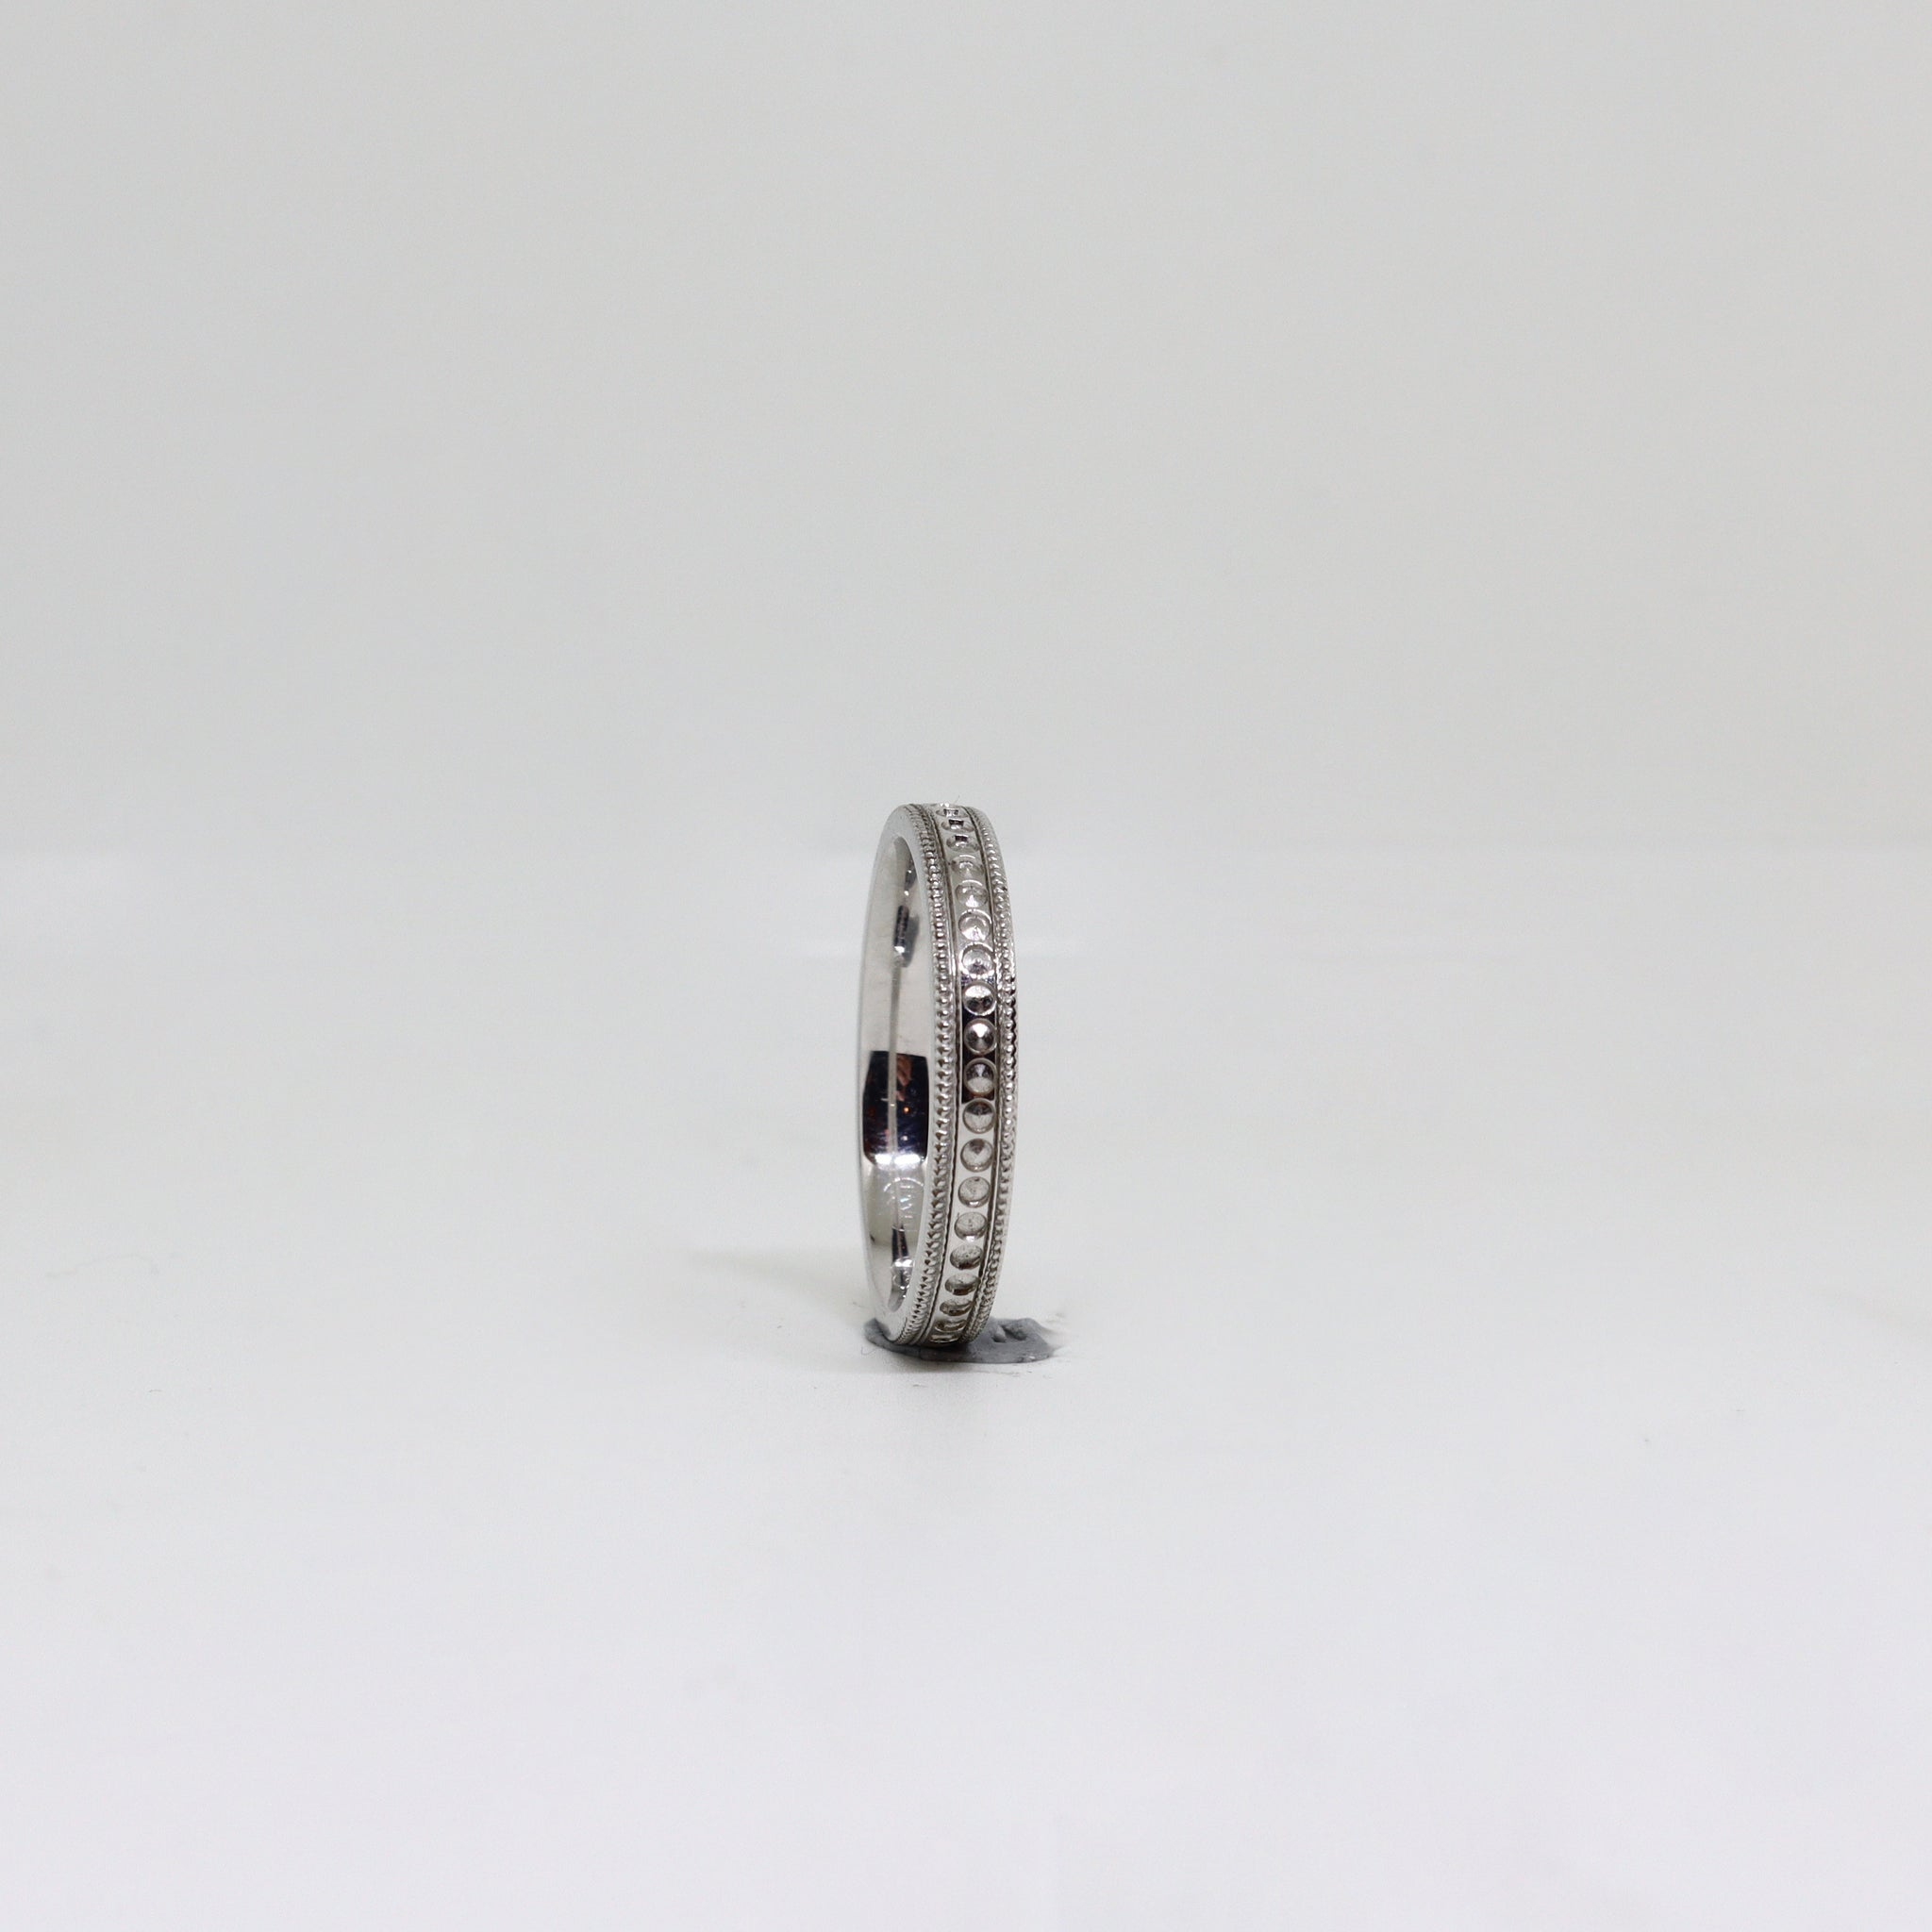 White gold millgrain womens ring with engraved center